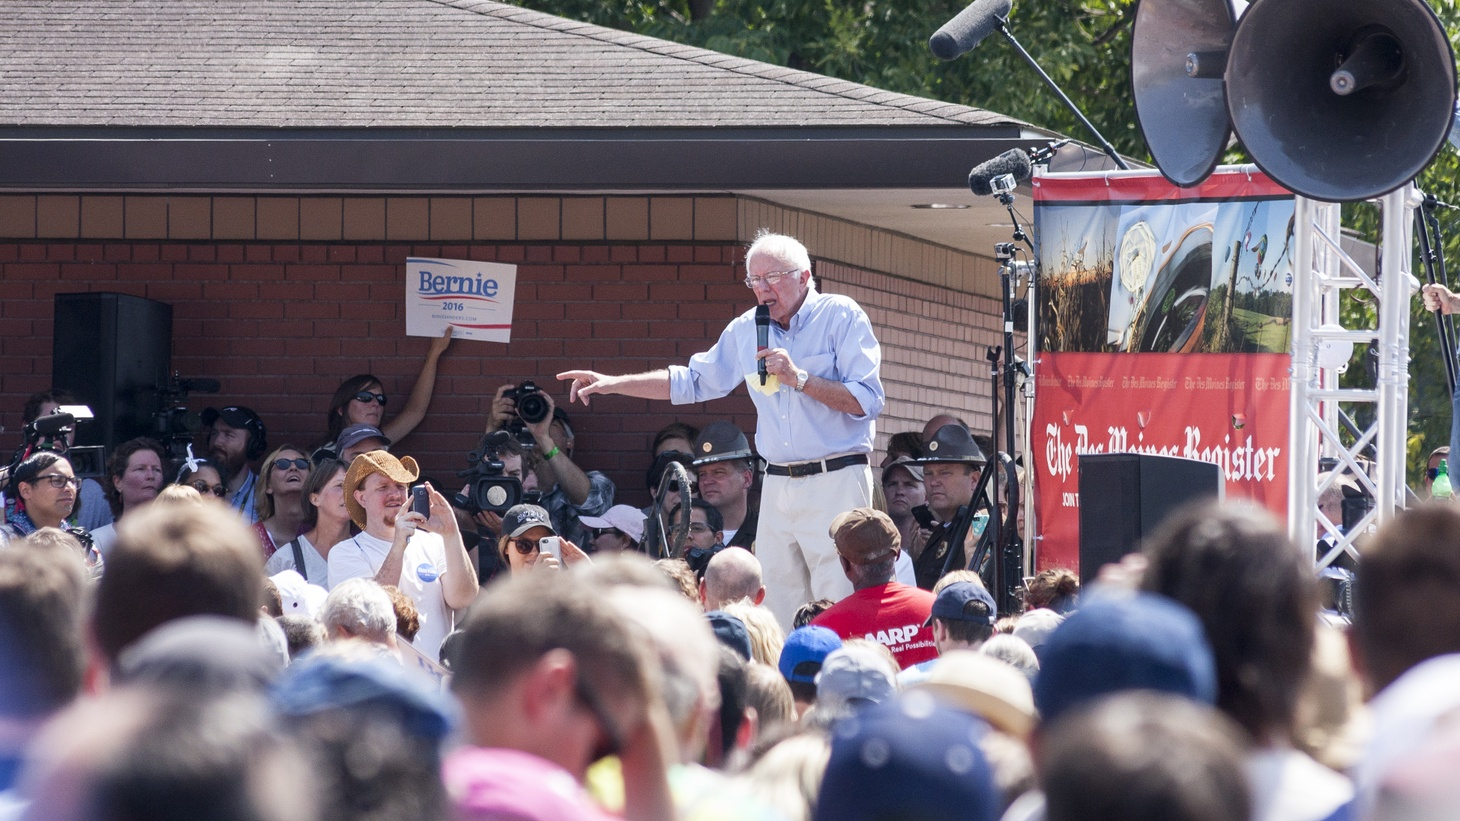 Bernie Sanders speaks to thousands of people during his remarks at the Des Moines Register's political soapbox at the 2015 Iowa State Fair.